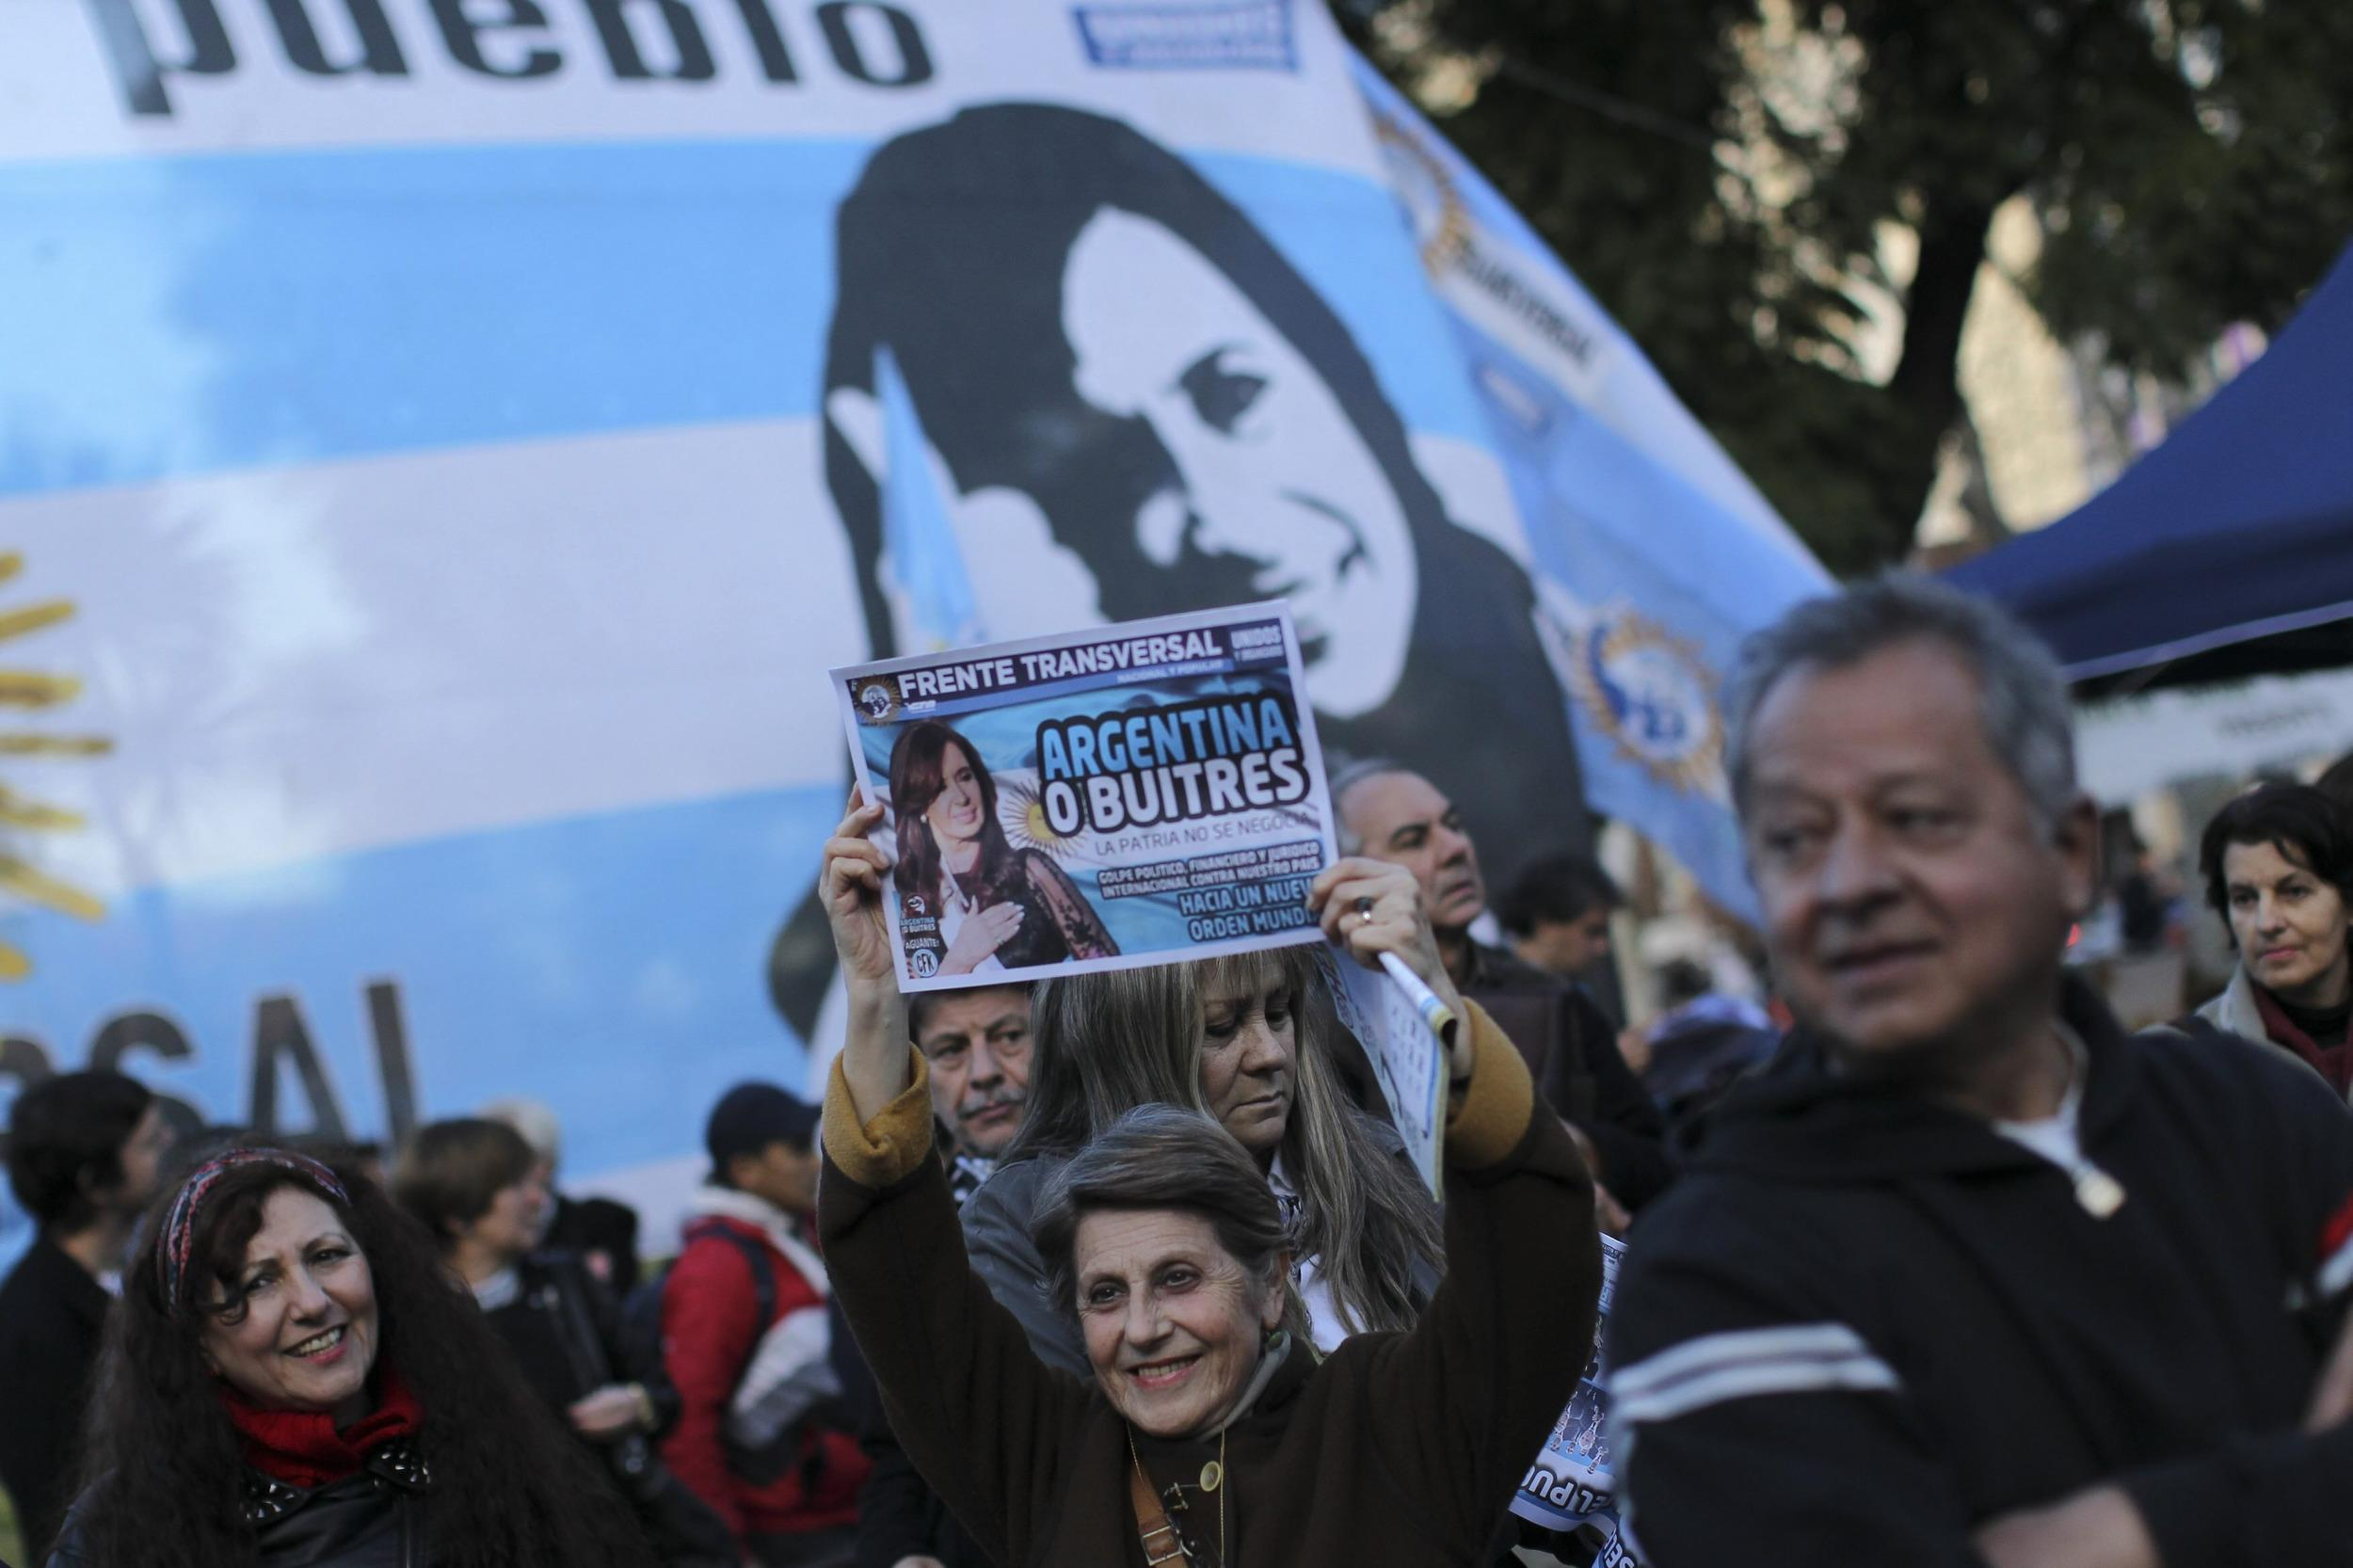 Supporters of Argentinean president Cristina Fernandez de Kirchner protest against hedge funds in Buenos Aires, Argentina, 30 July 2014.